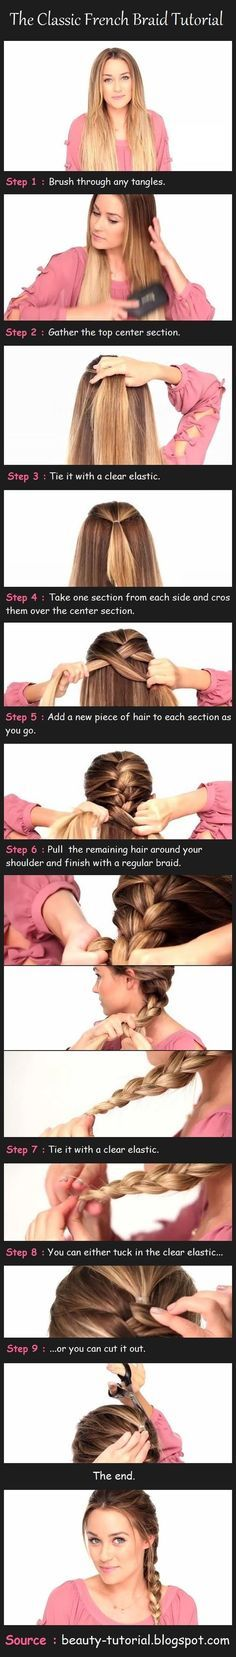 As one of the only girls left in the world who doesn't know how to french braid her hair: Where has this tutorial been all my life!? This will be great if I have a little girl